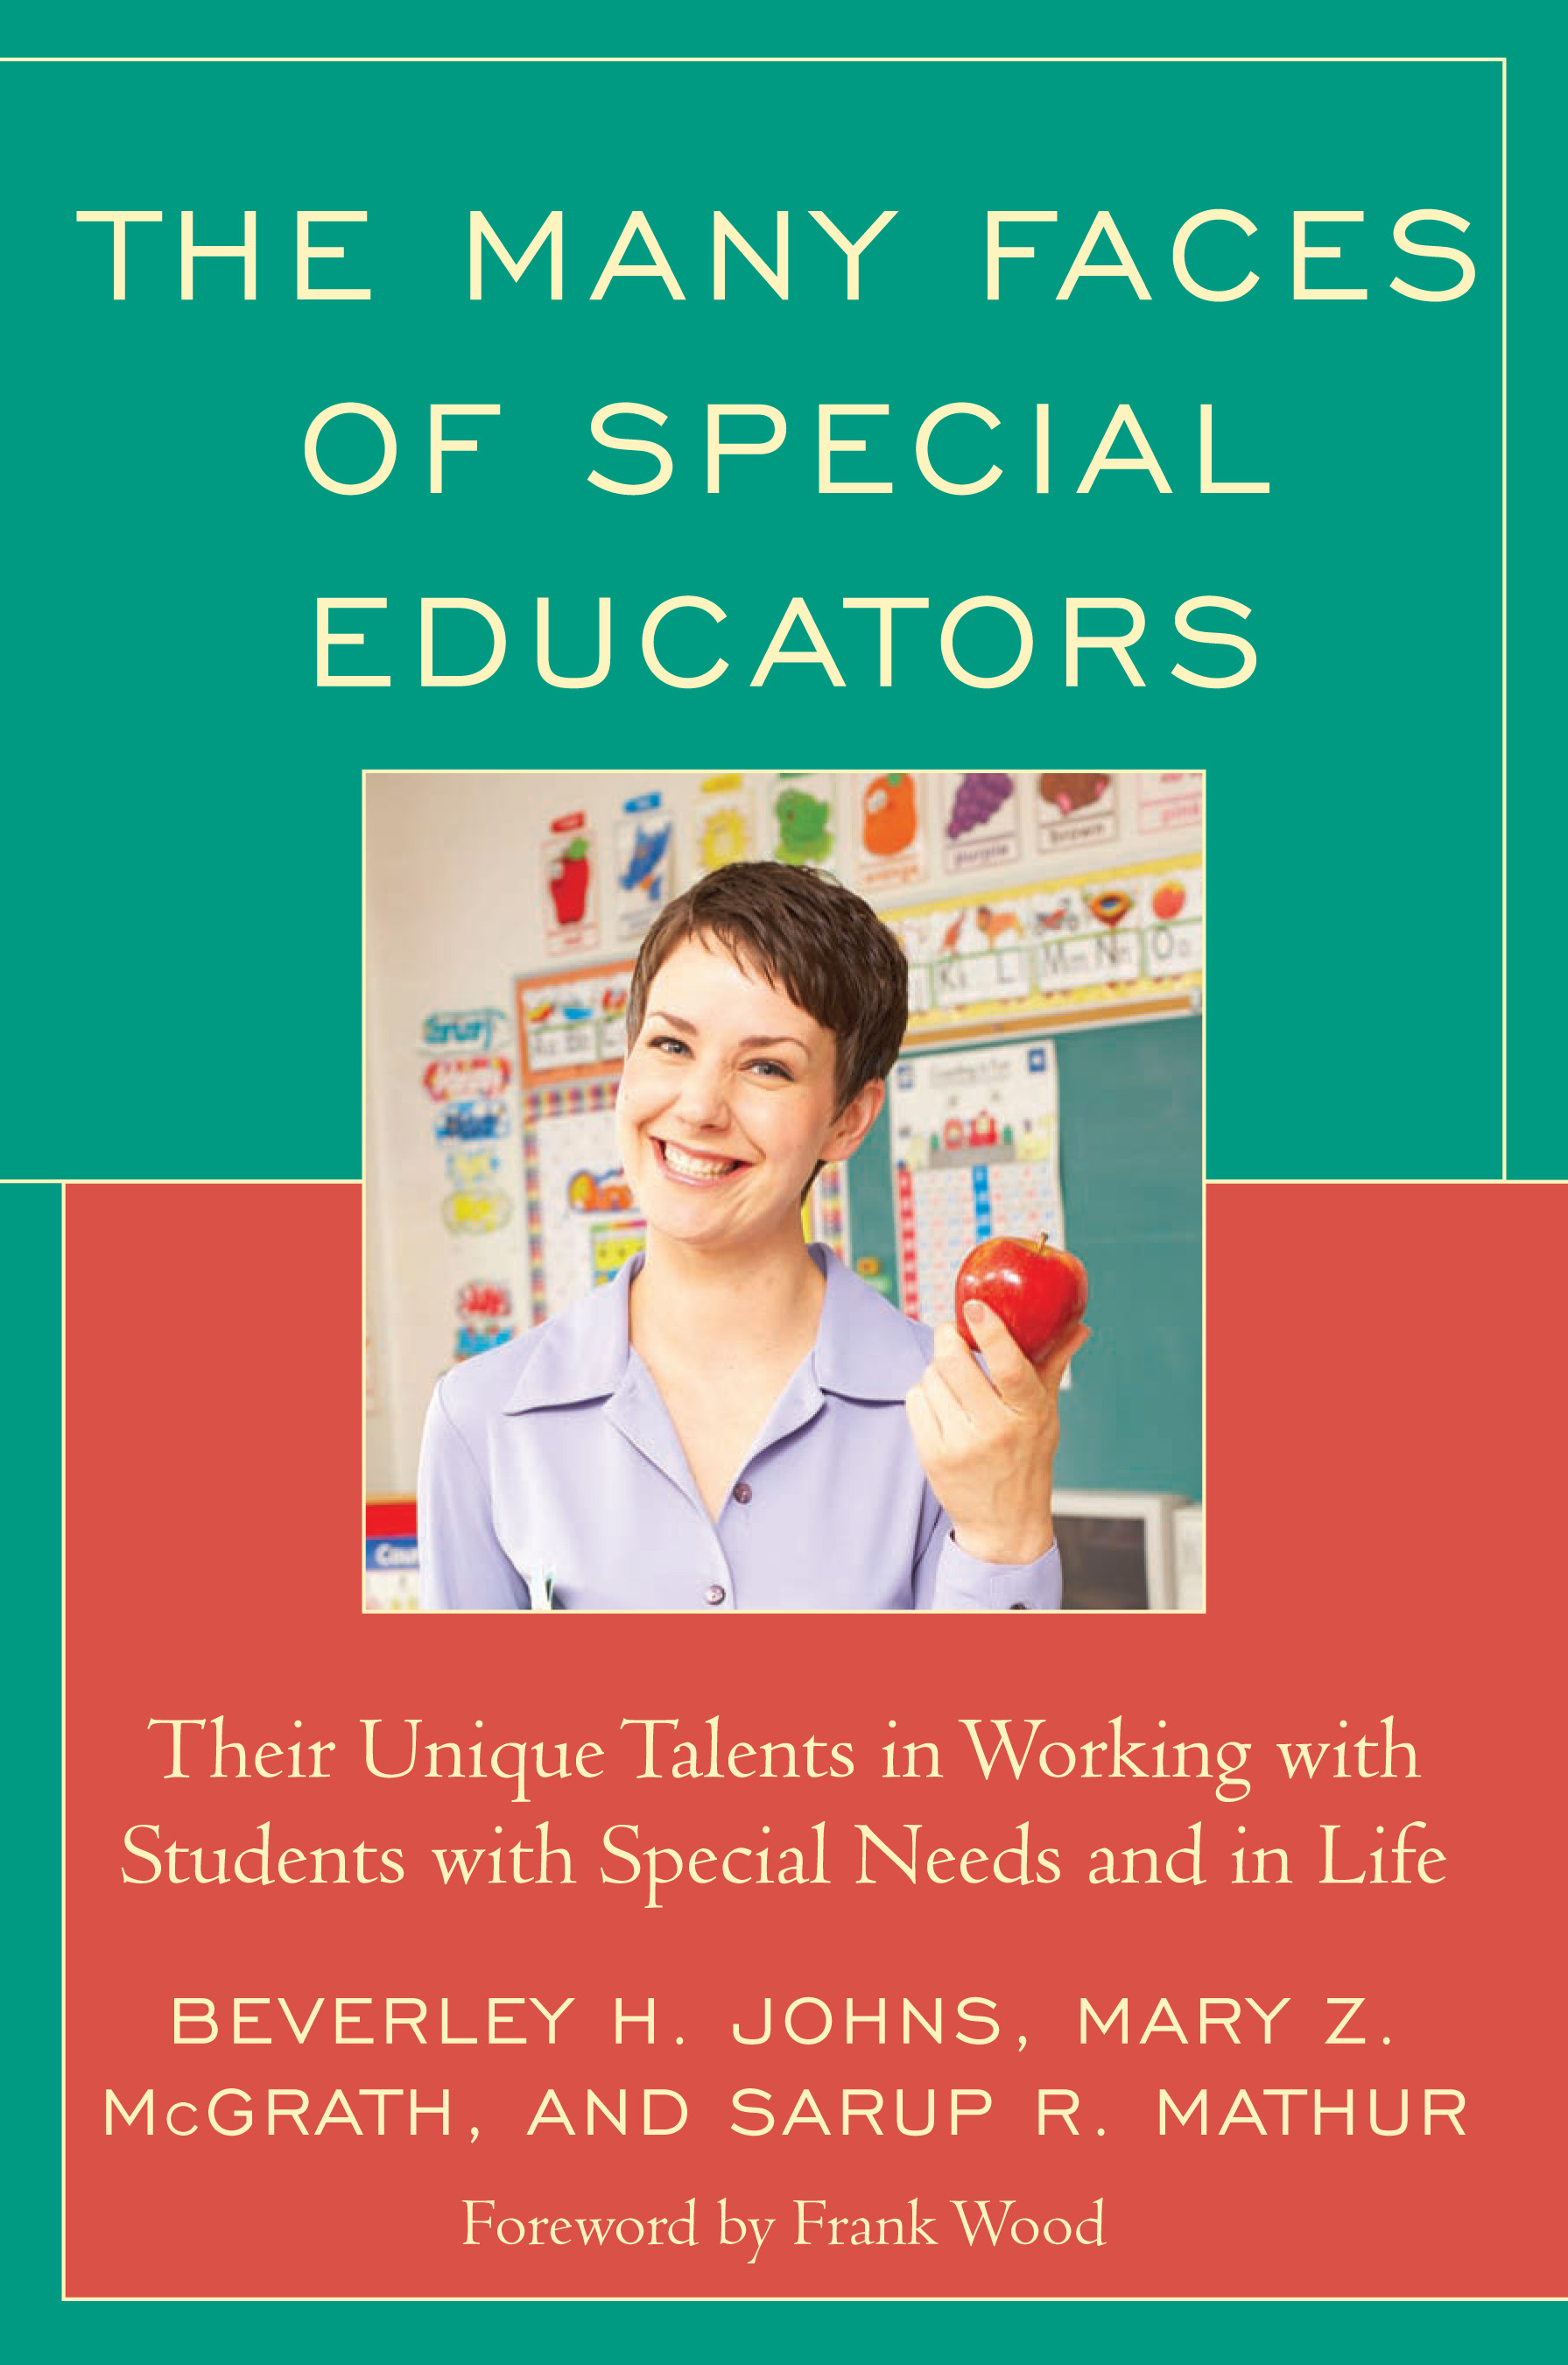 The Many Faces of Special Educators By: Beverly H. Johns,Mary Z. McGrath,Sarup R. Mathur